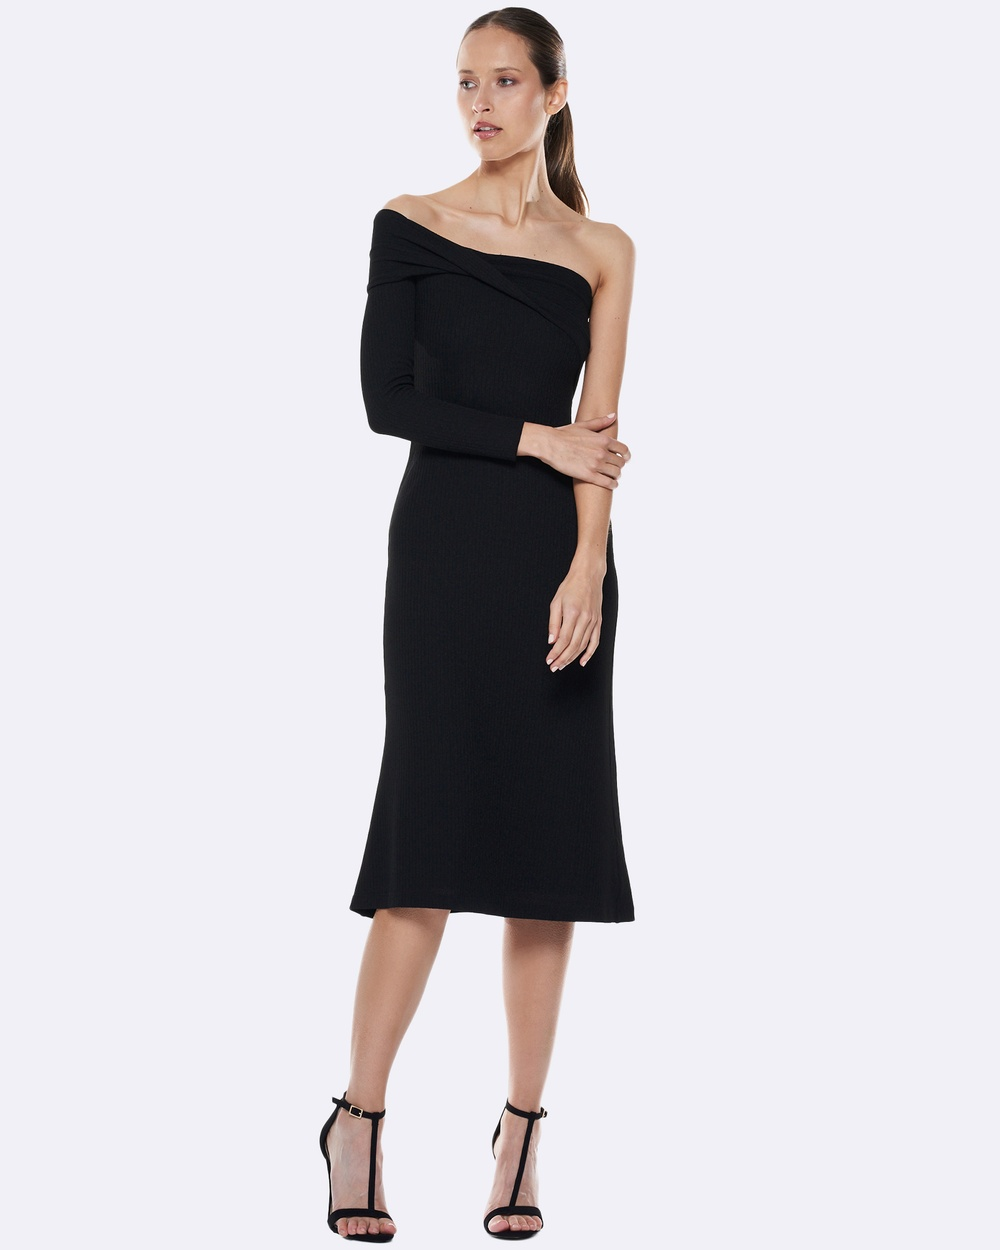 Talulah Mystery Asymetrical Knitted Dress Dresses Black Mystery Asymetrical Knitted Dress